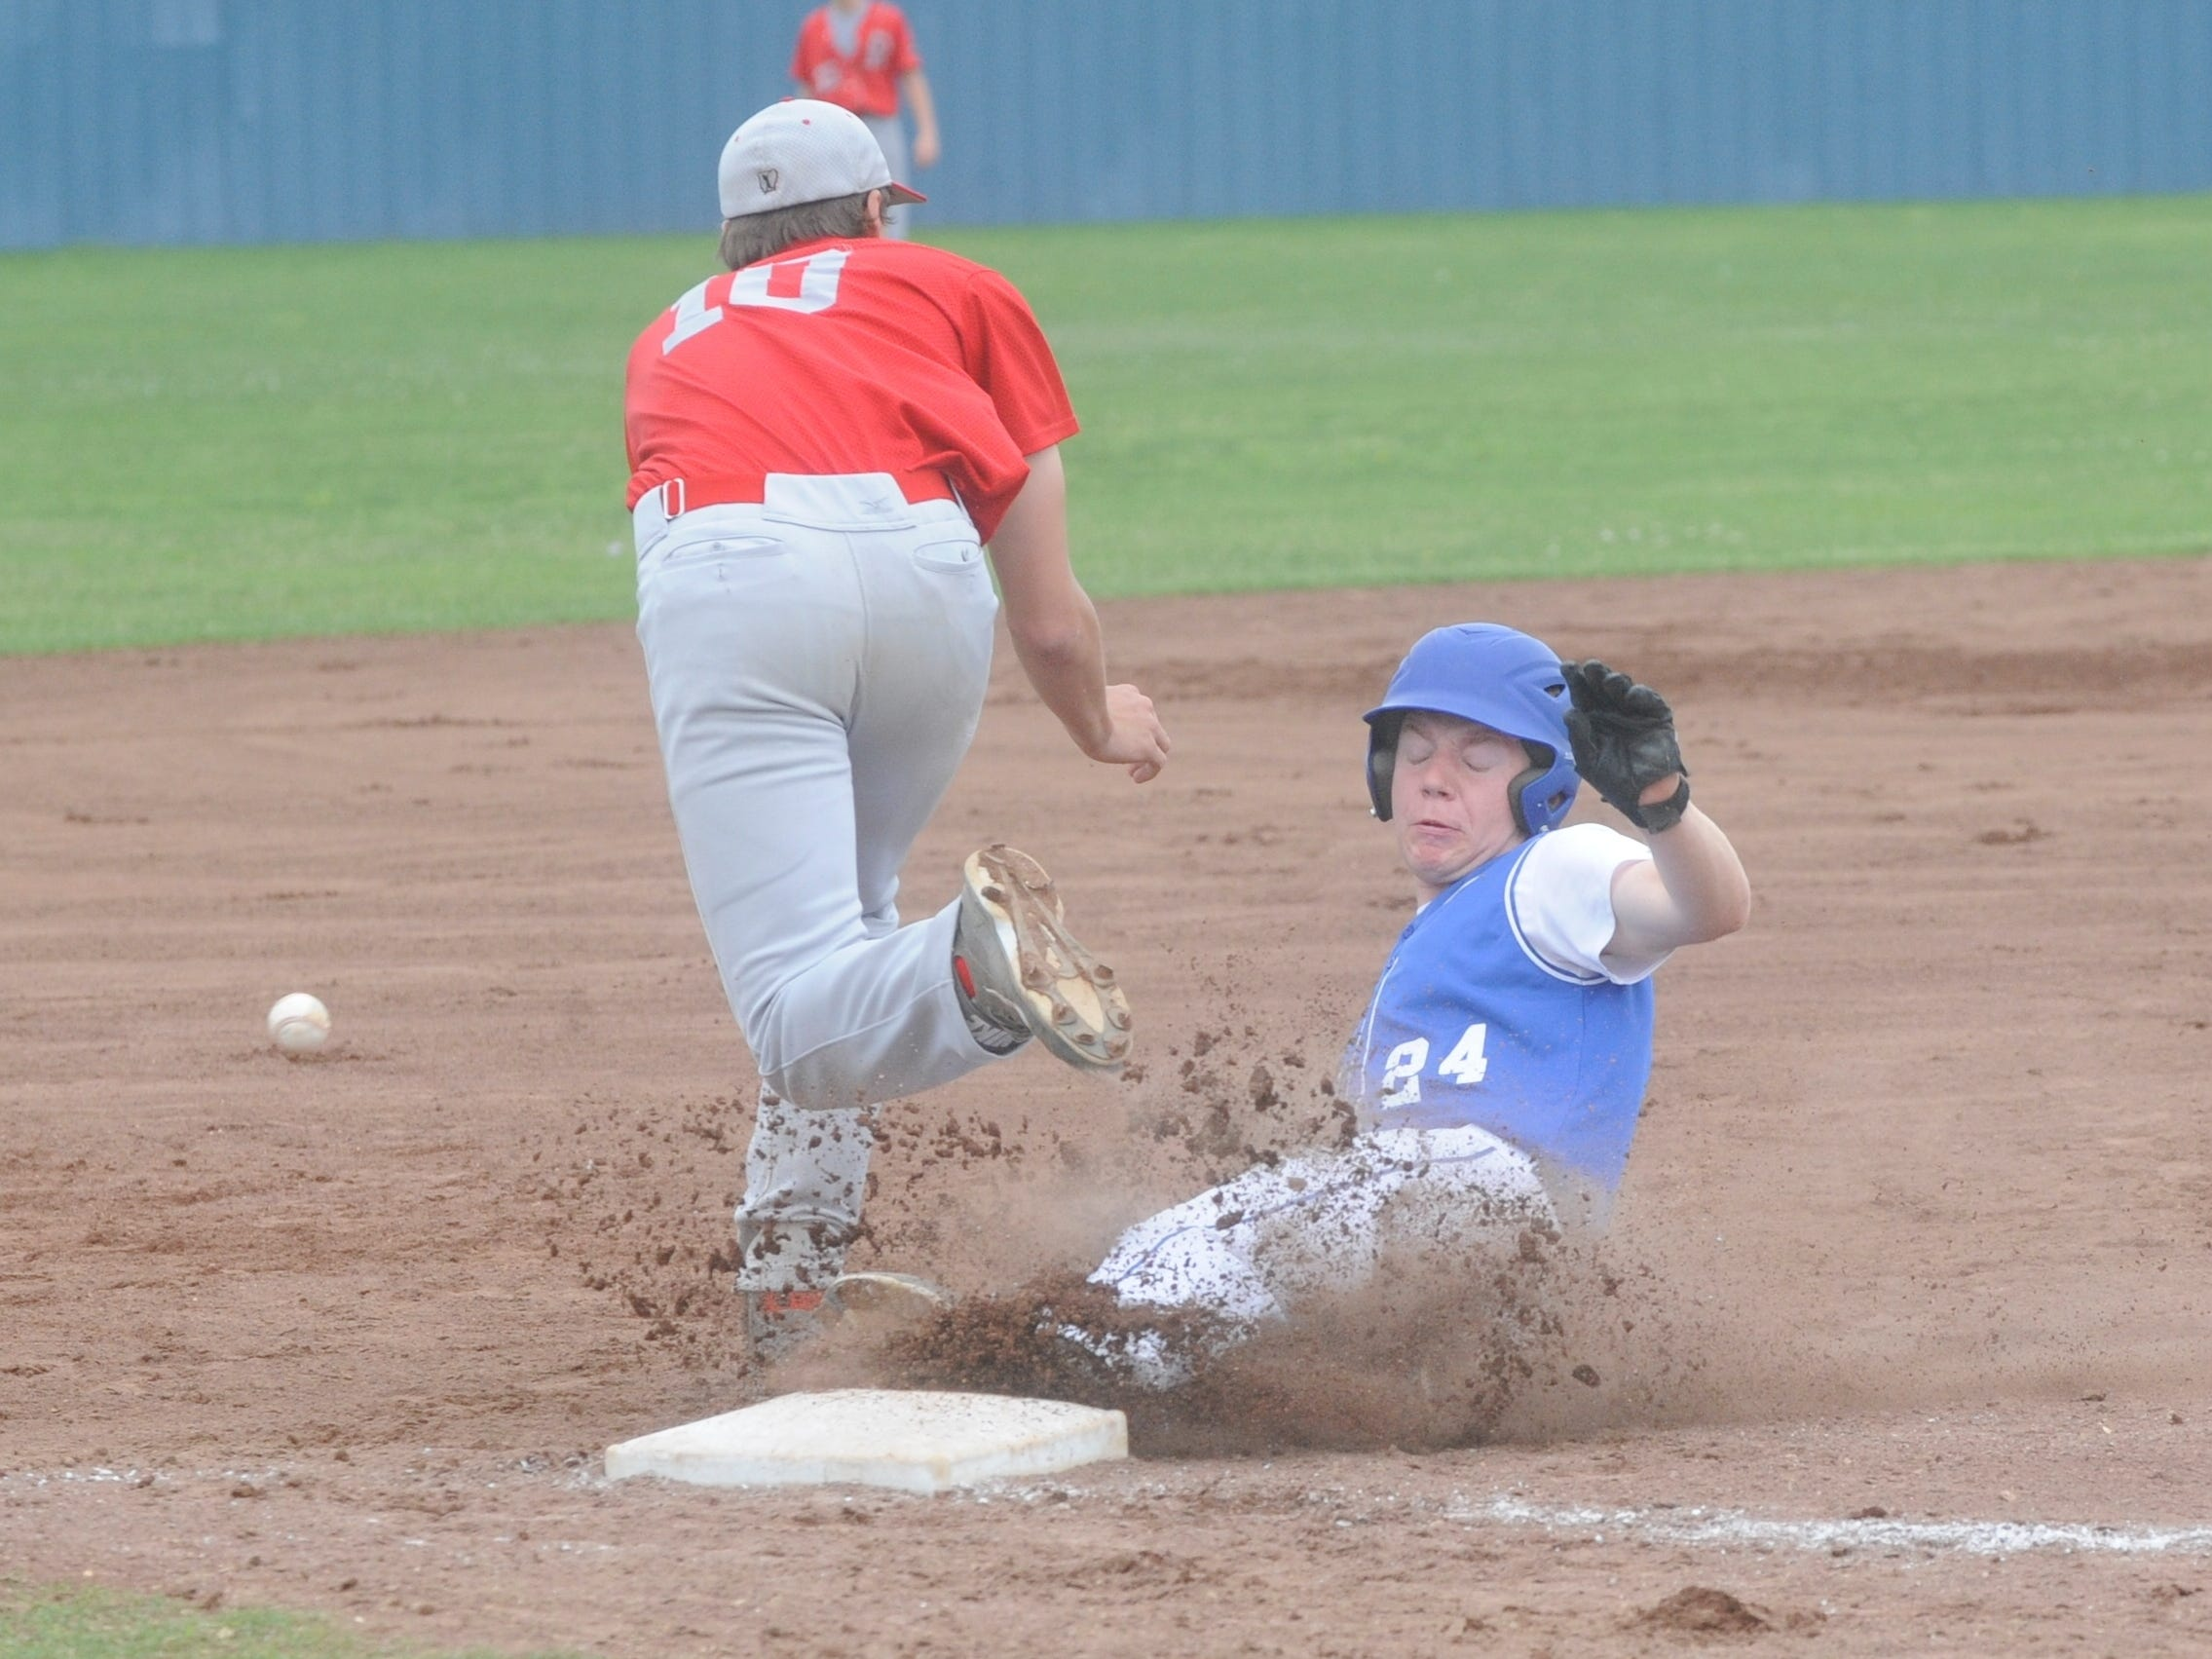 Cotter's Aron Rowe, right, slides safely into third base during the Warriors' 13-5 loss to Rivercrest in the championship game of the 3A Region 3 Tournament on Tuesday at Harrison.